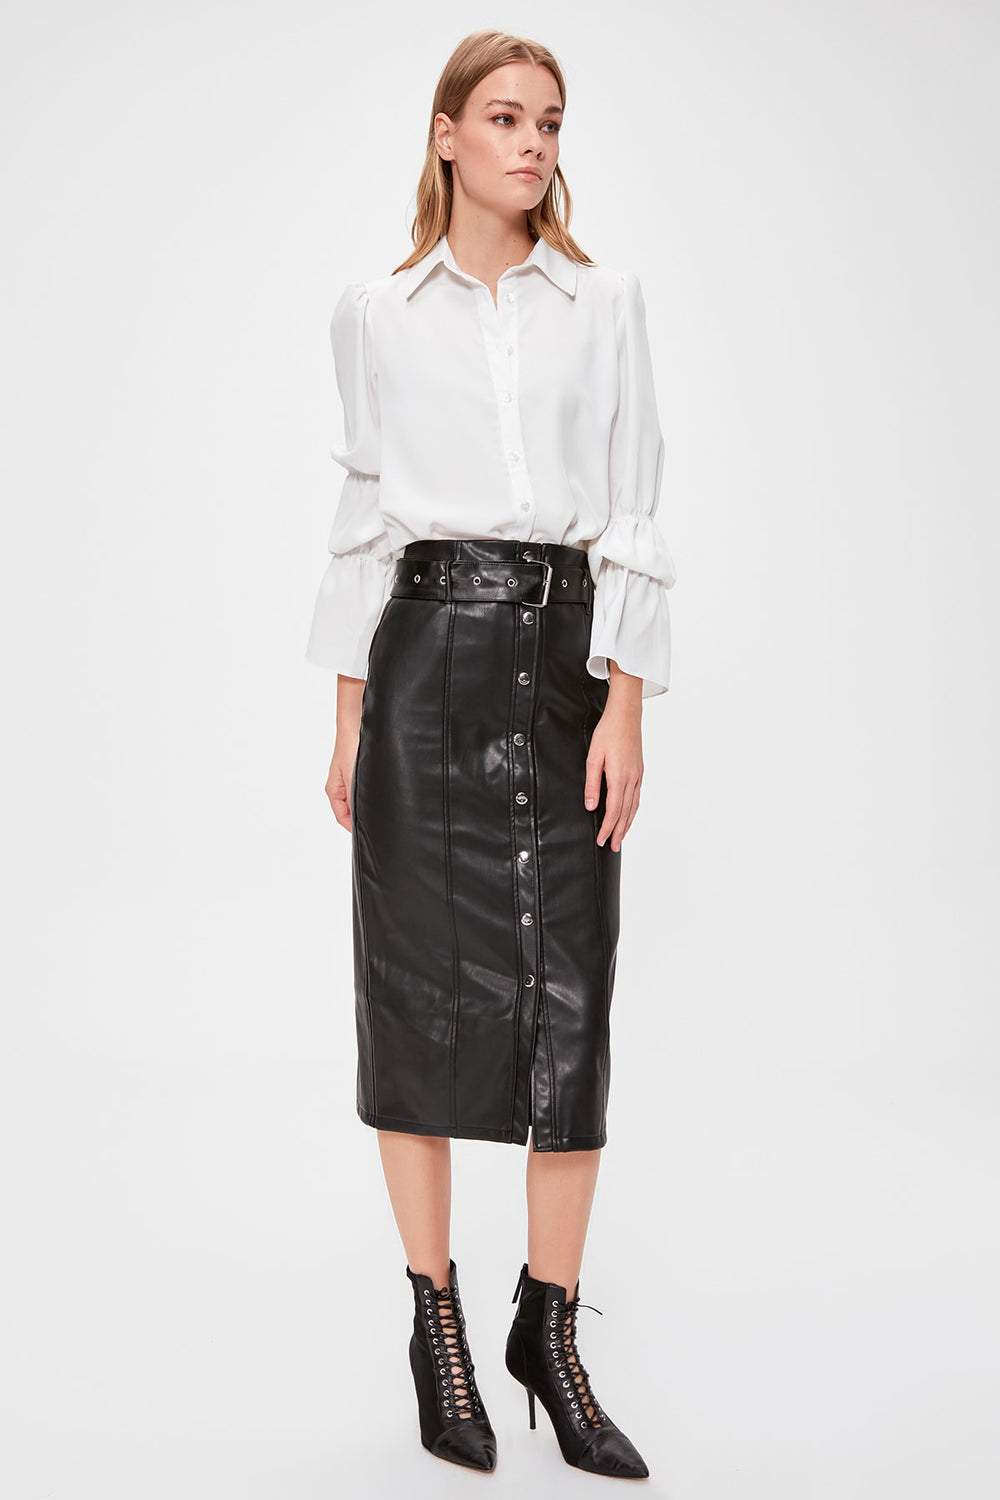 Miss Zut Miss Zut Leather Skirt Miss Zut &CO